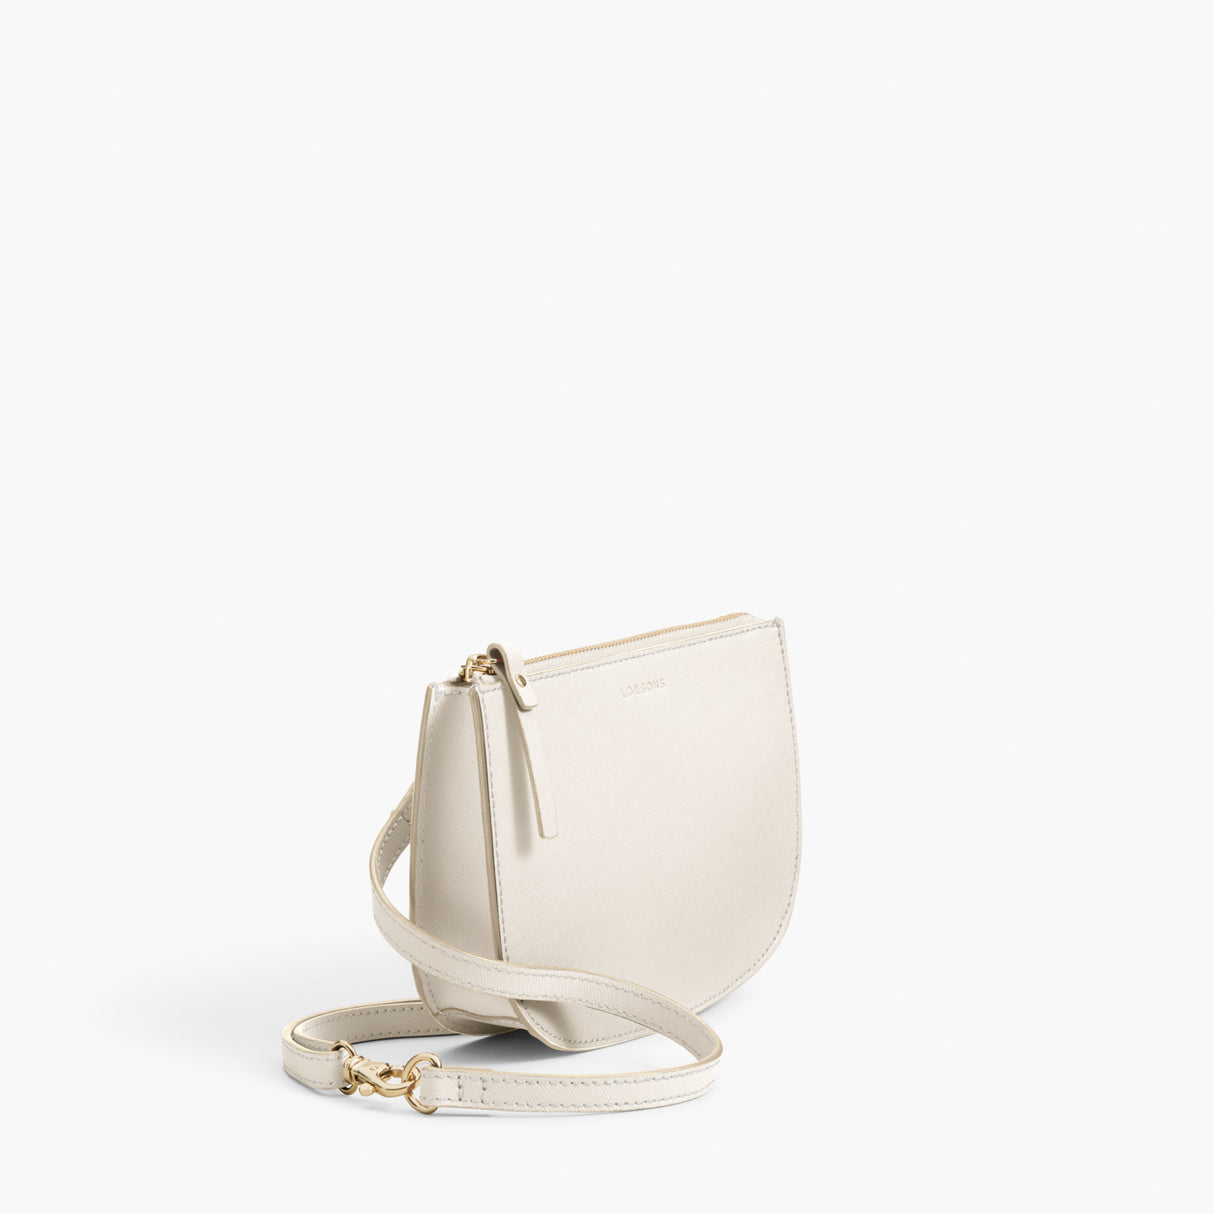 Side Crossbody - The Waverley 2 - Saffiano Leather - Ivory / Gold / Camel - Crossbody - Lo & Sons